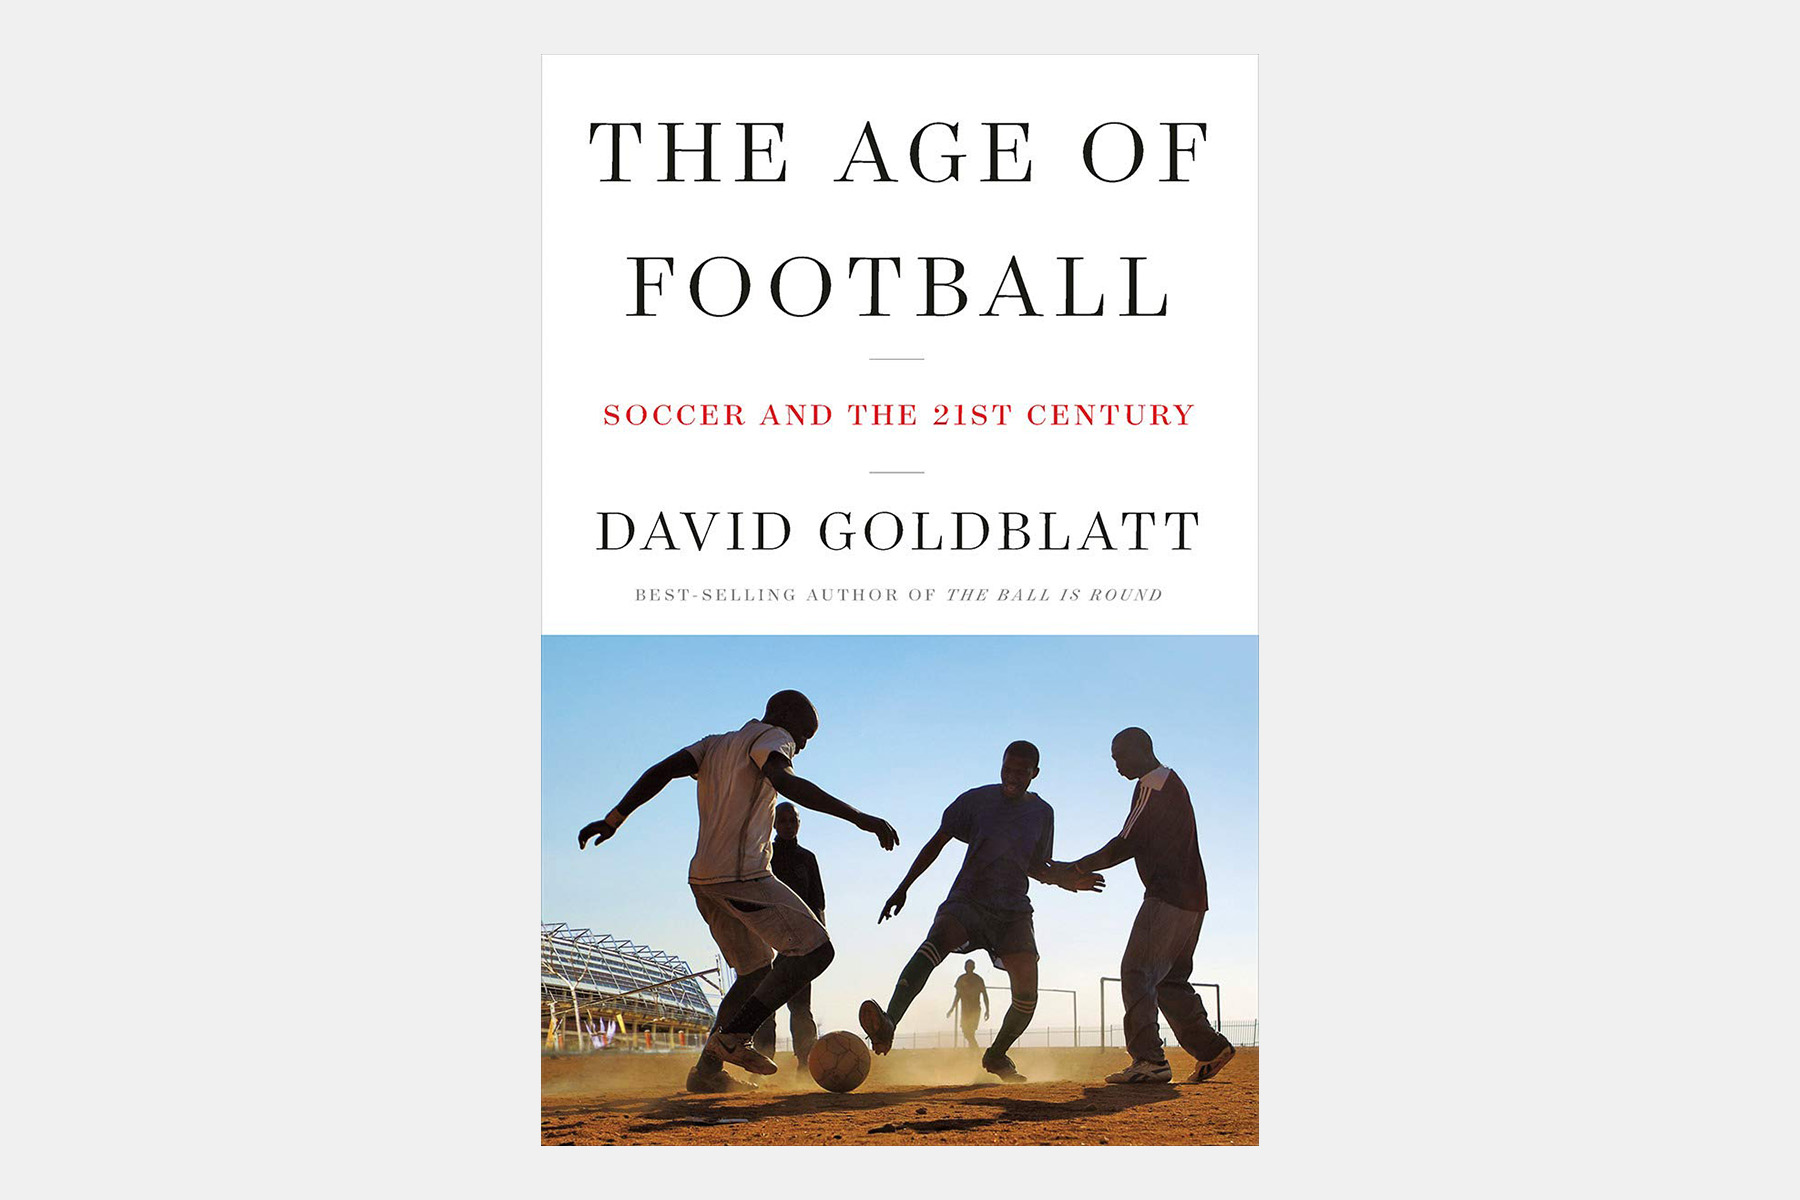 david goldblatt age of football